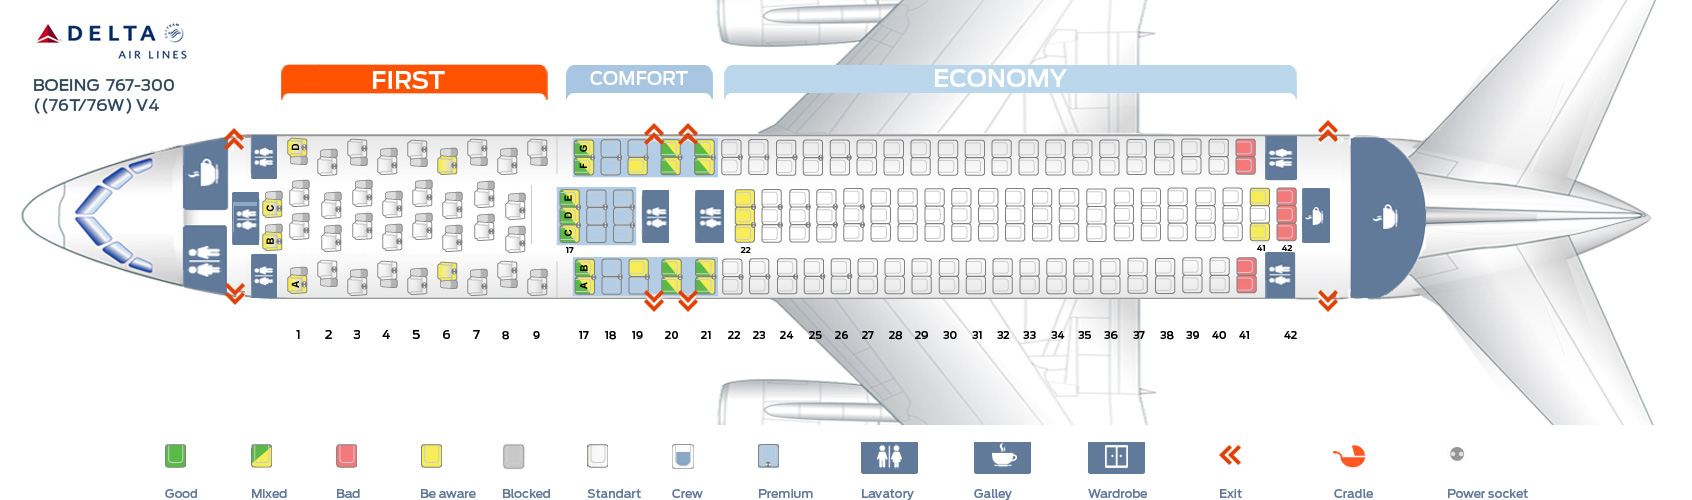 seat map boeing 767 300 delta airlines best seats in plane